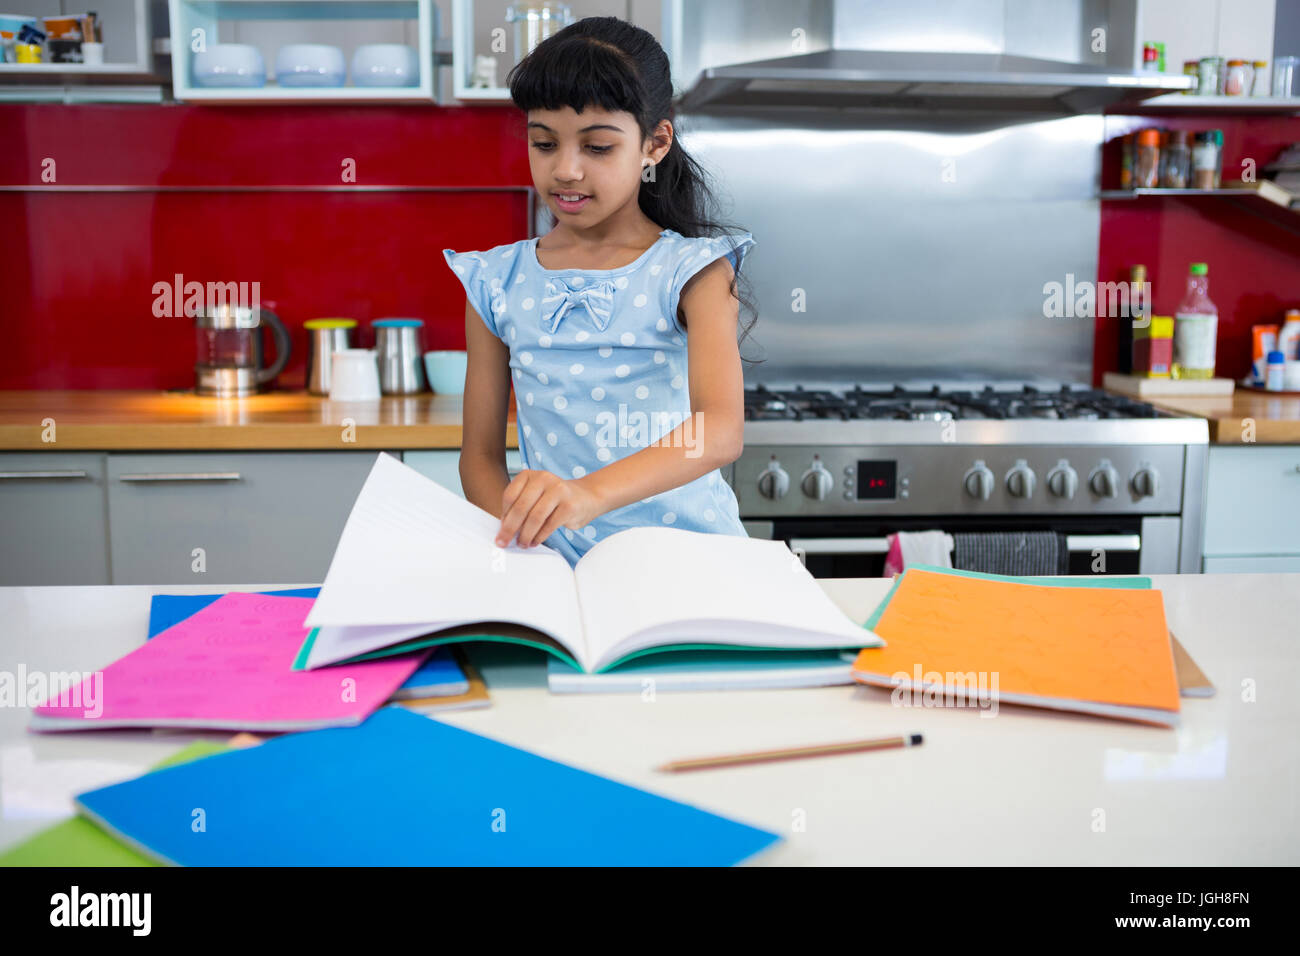 Girl flipping pages of book in kitchen at home - Stock Image